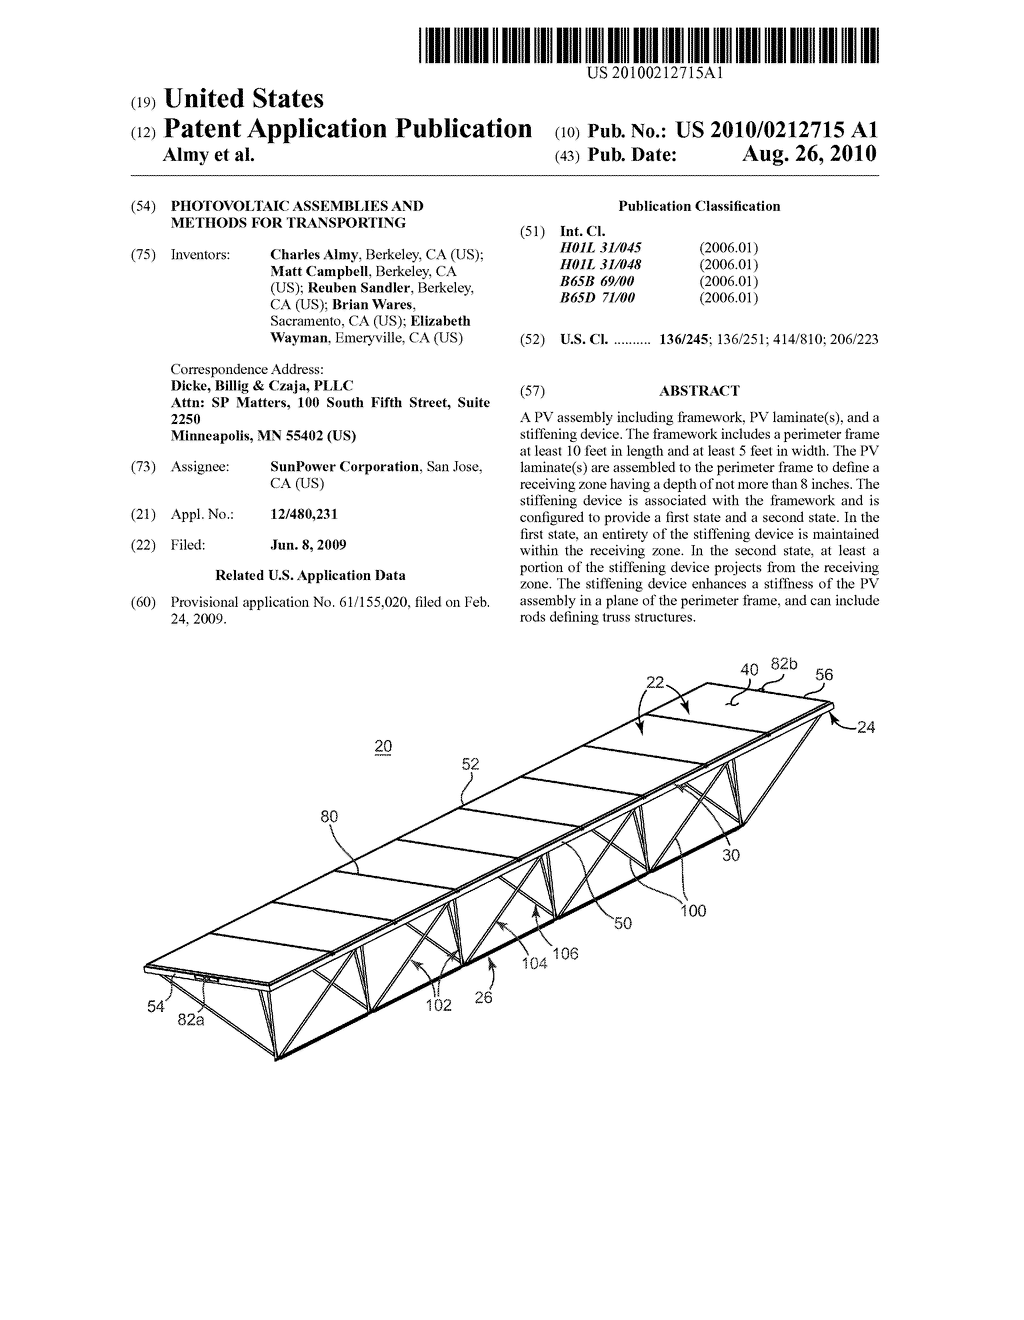 PHOTOVOLTAIC ASSEMBLIES AND METHODS FOR TRANSPORTING - diagram, schematic, and image 01